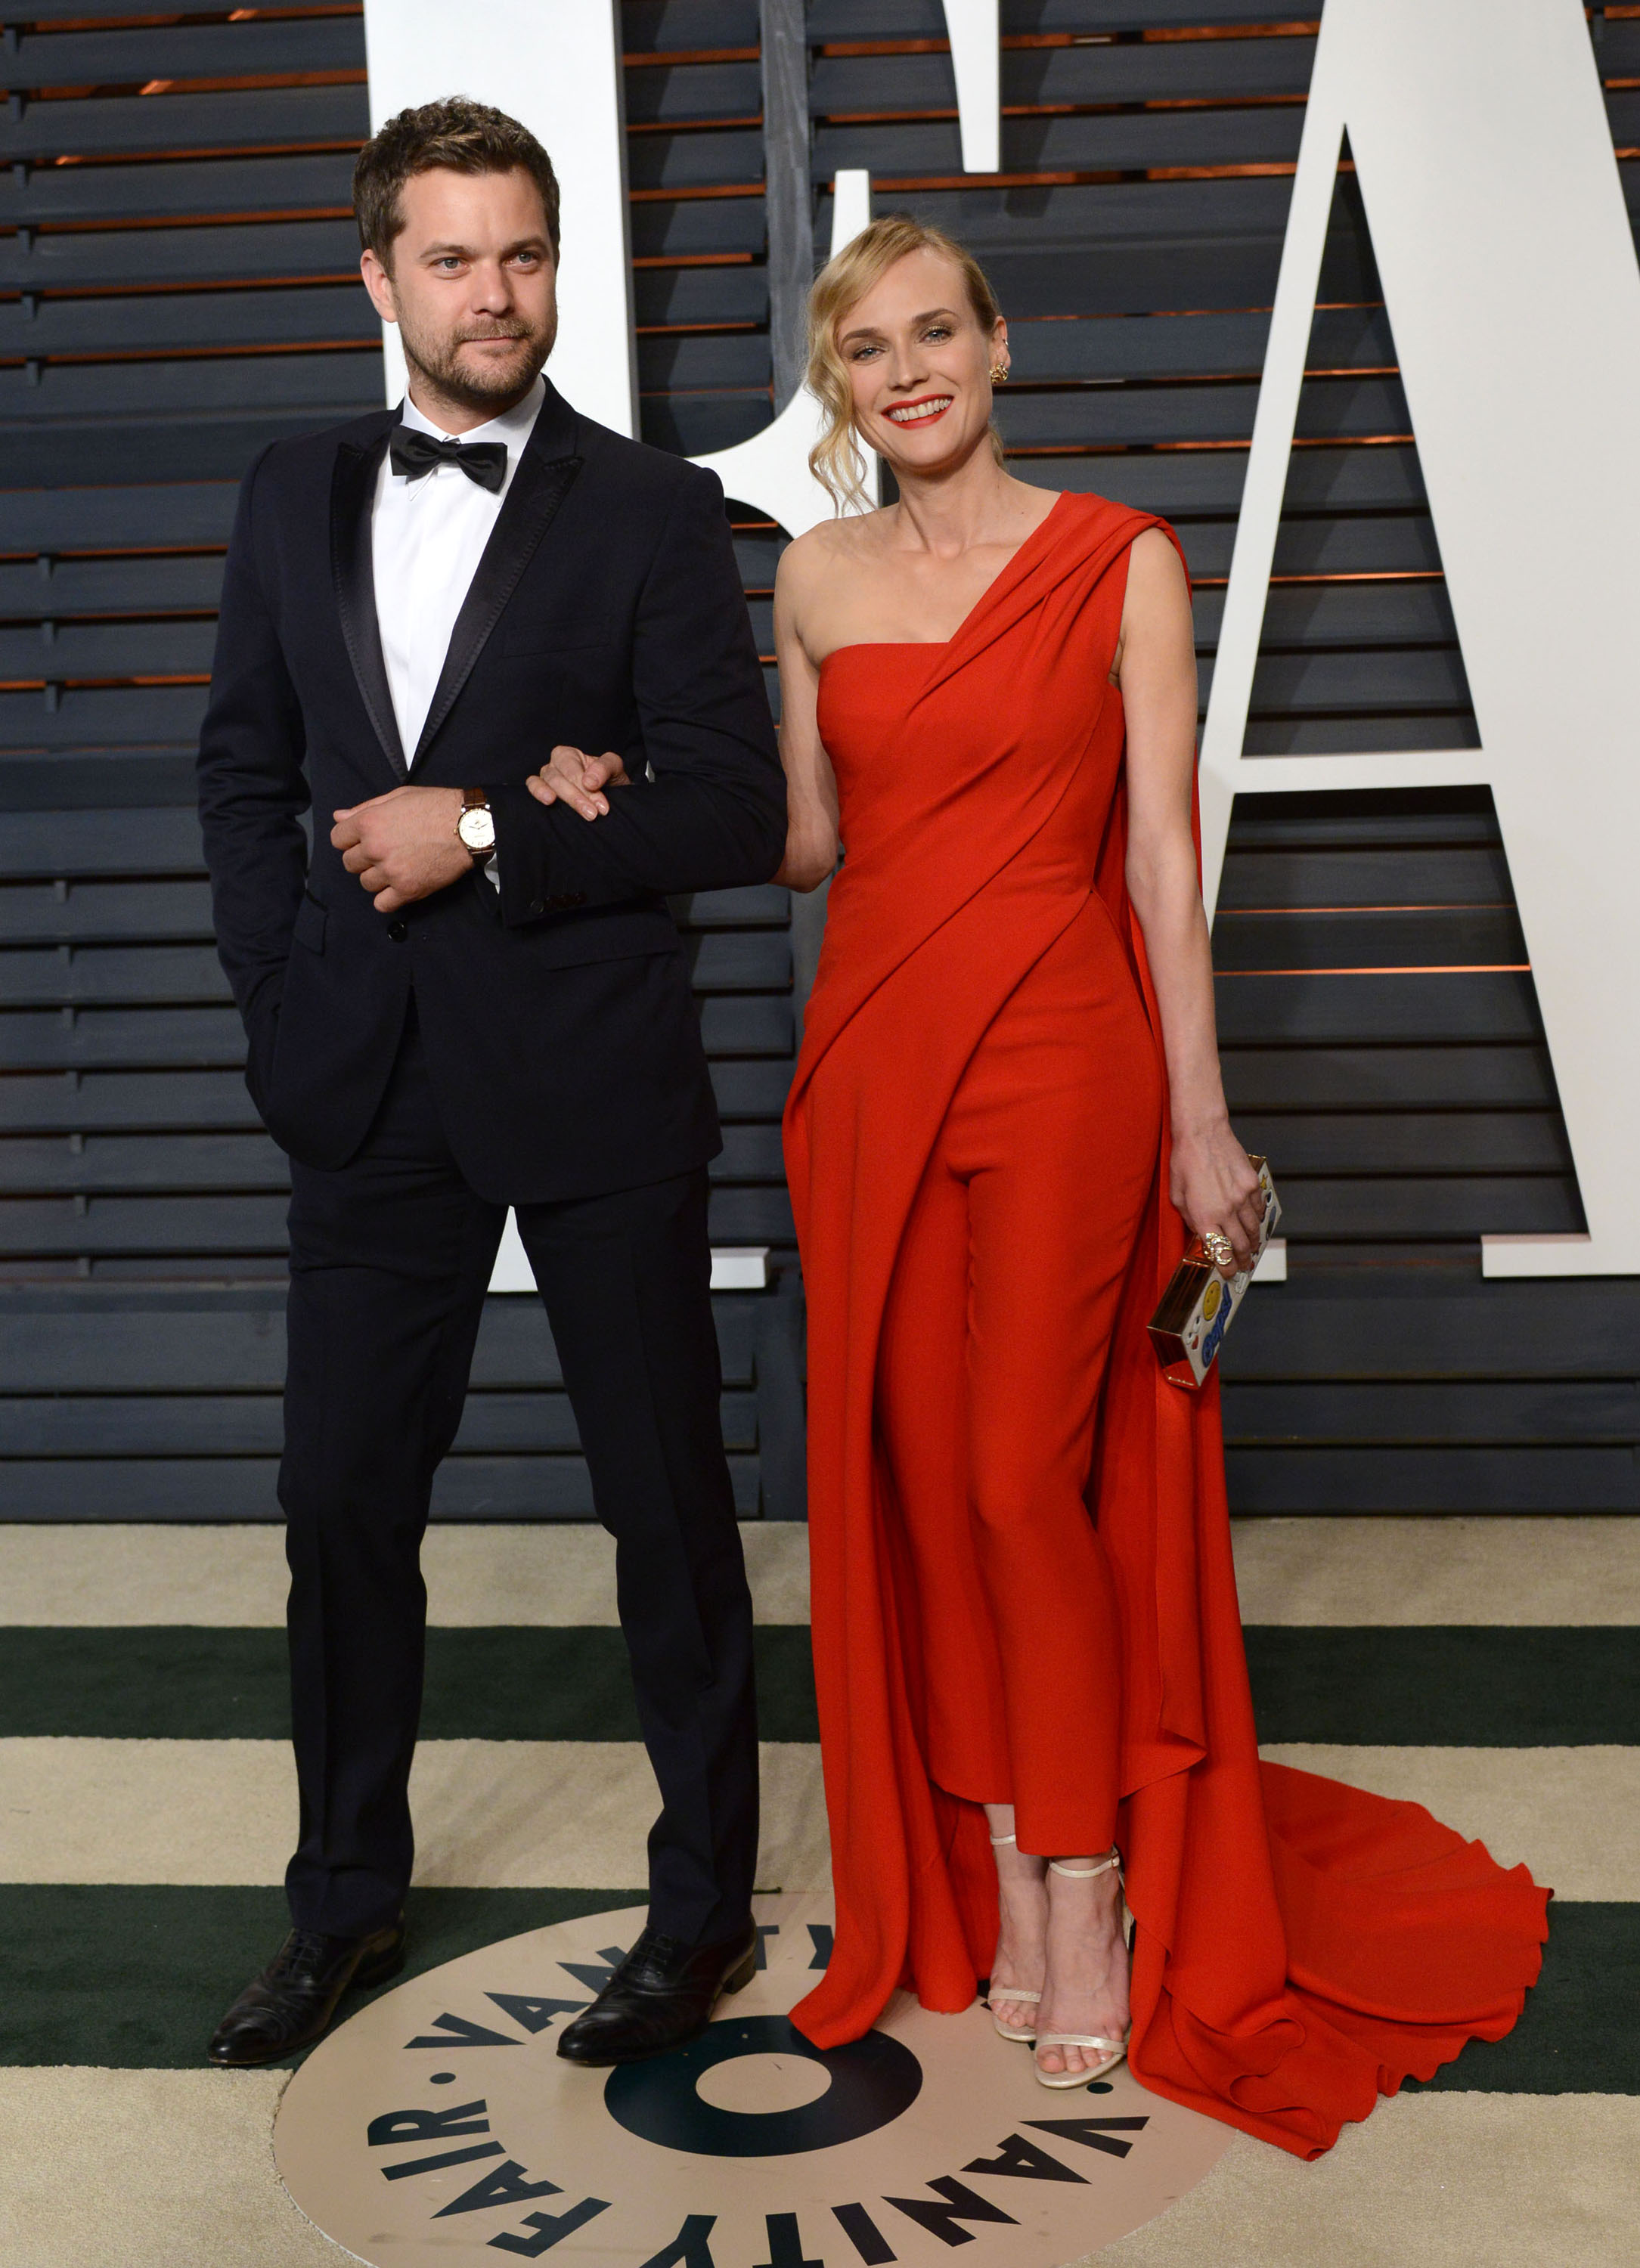 Oscars Fugs and Fabs: The Red Carpet Couples